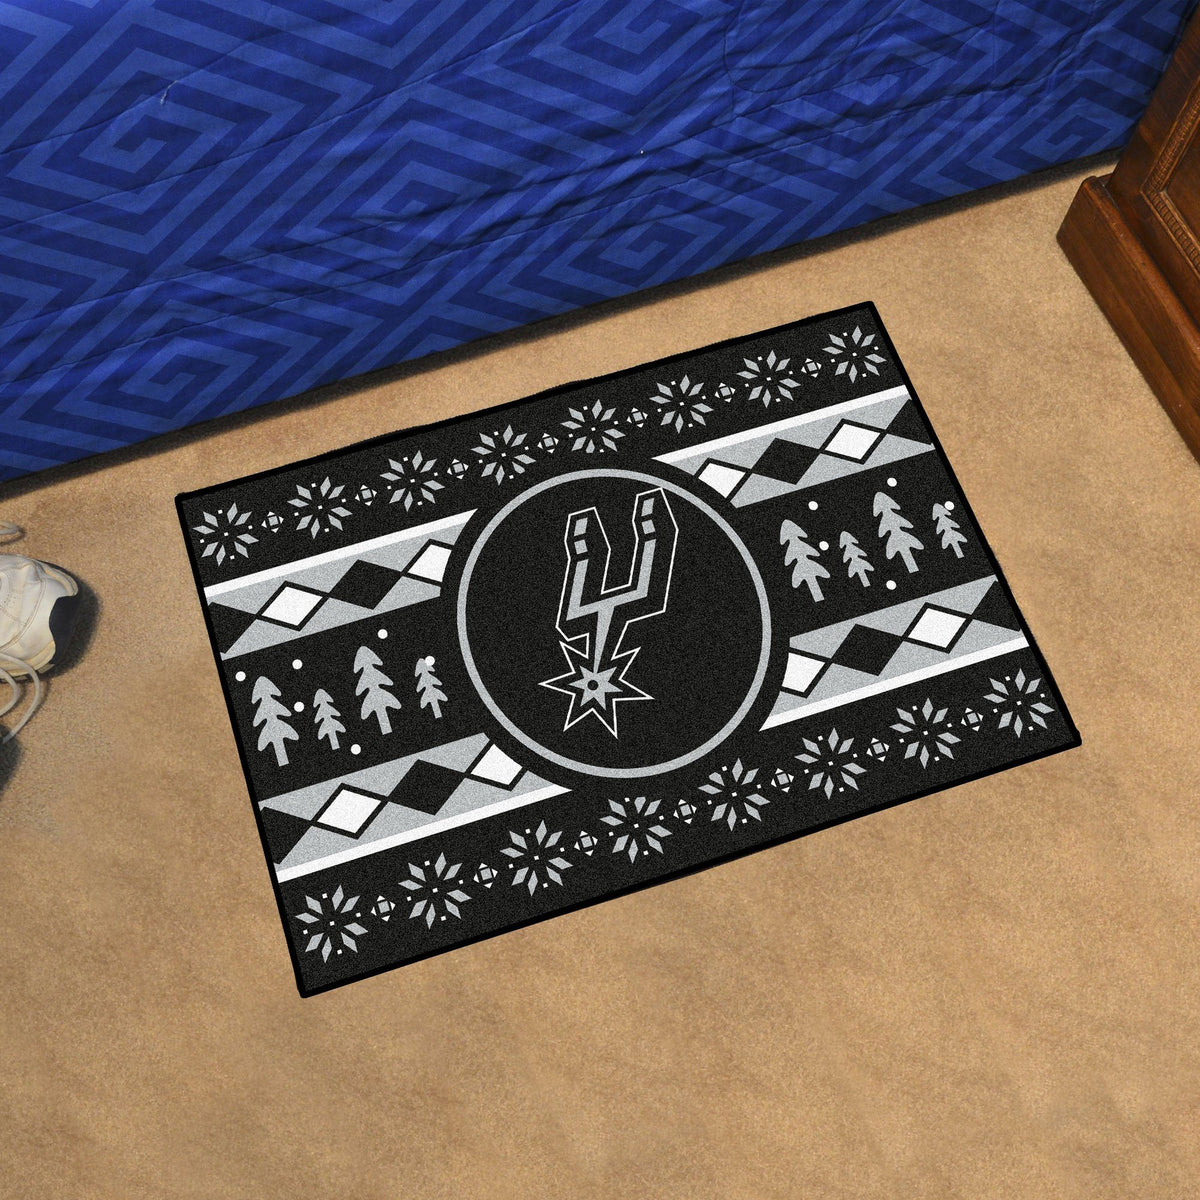 NBA - Holiday Sweater Starter Mat NBA Mats, Rectangular Mats, Holiday Sweater Starter Mat, NBA, Home Fan Mats San Antonio Spurs